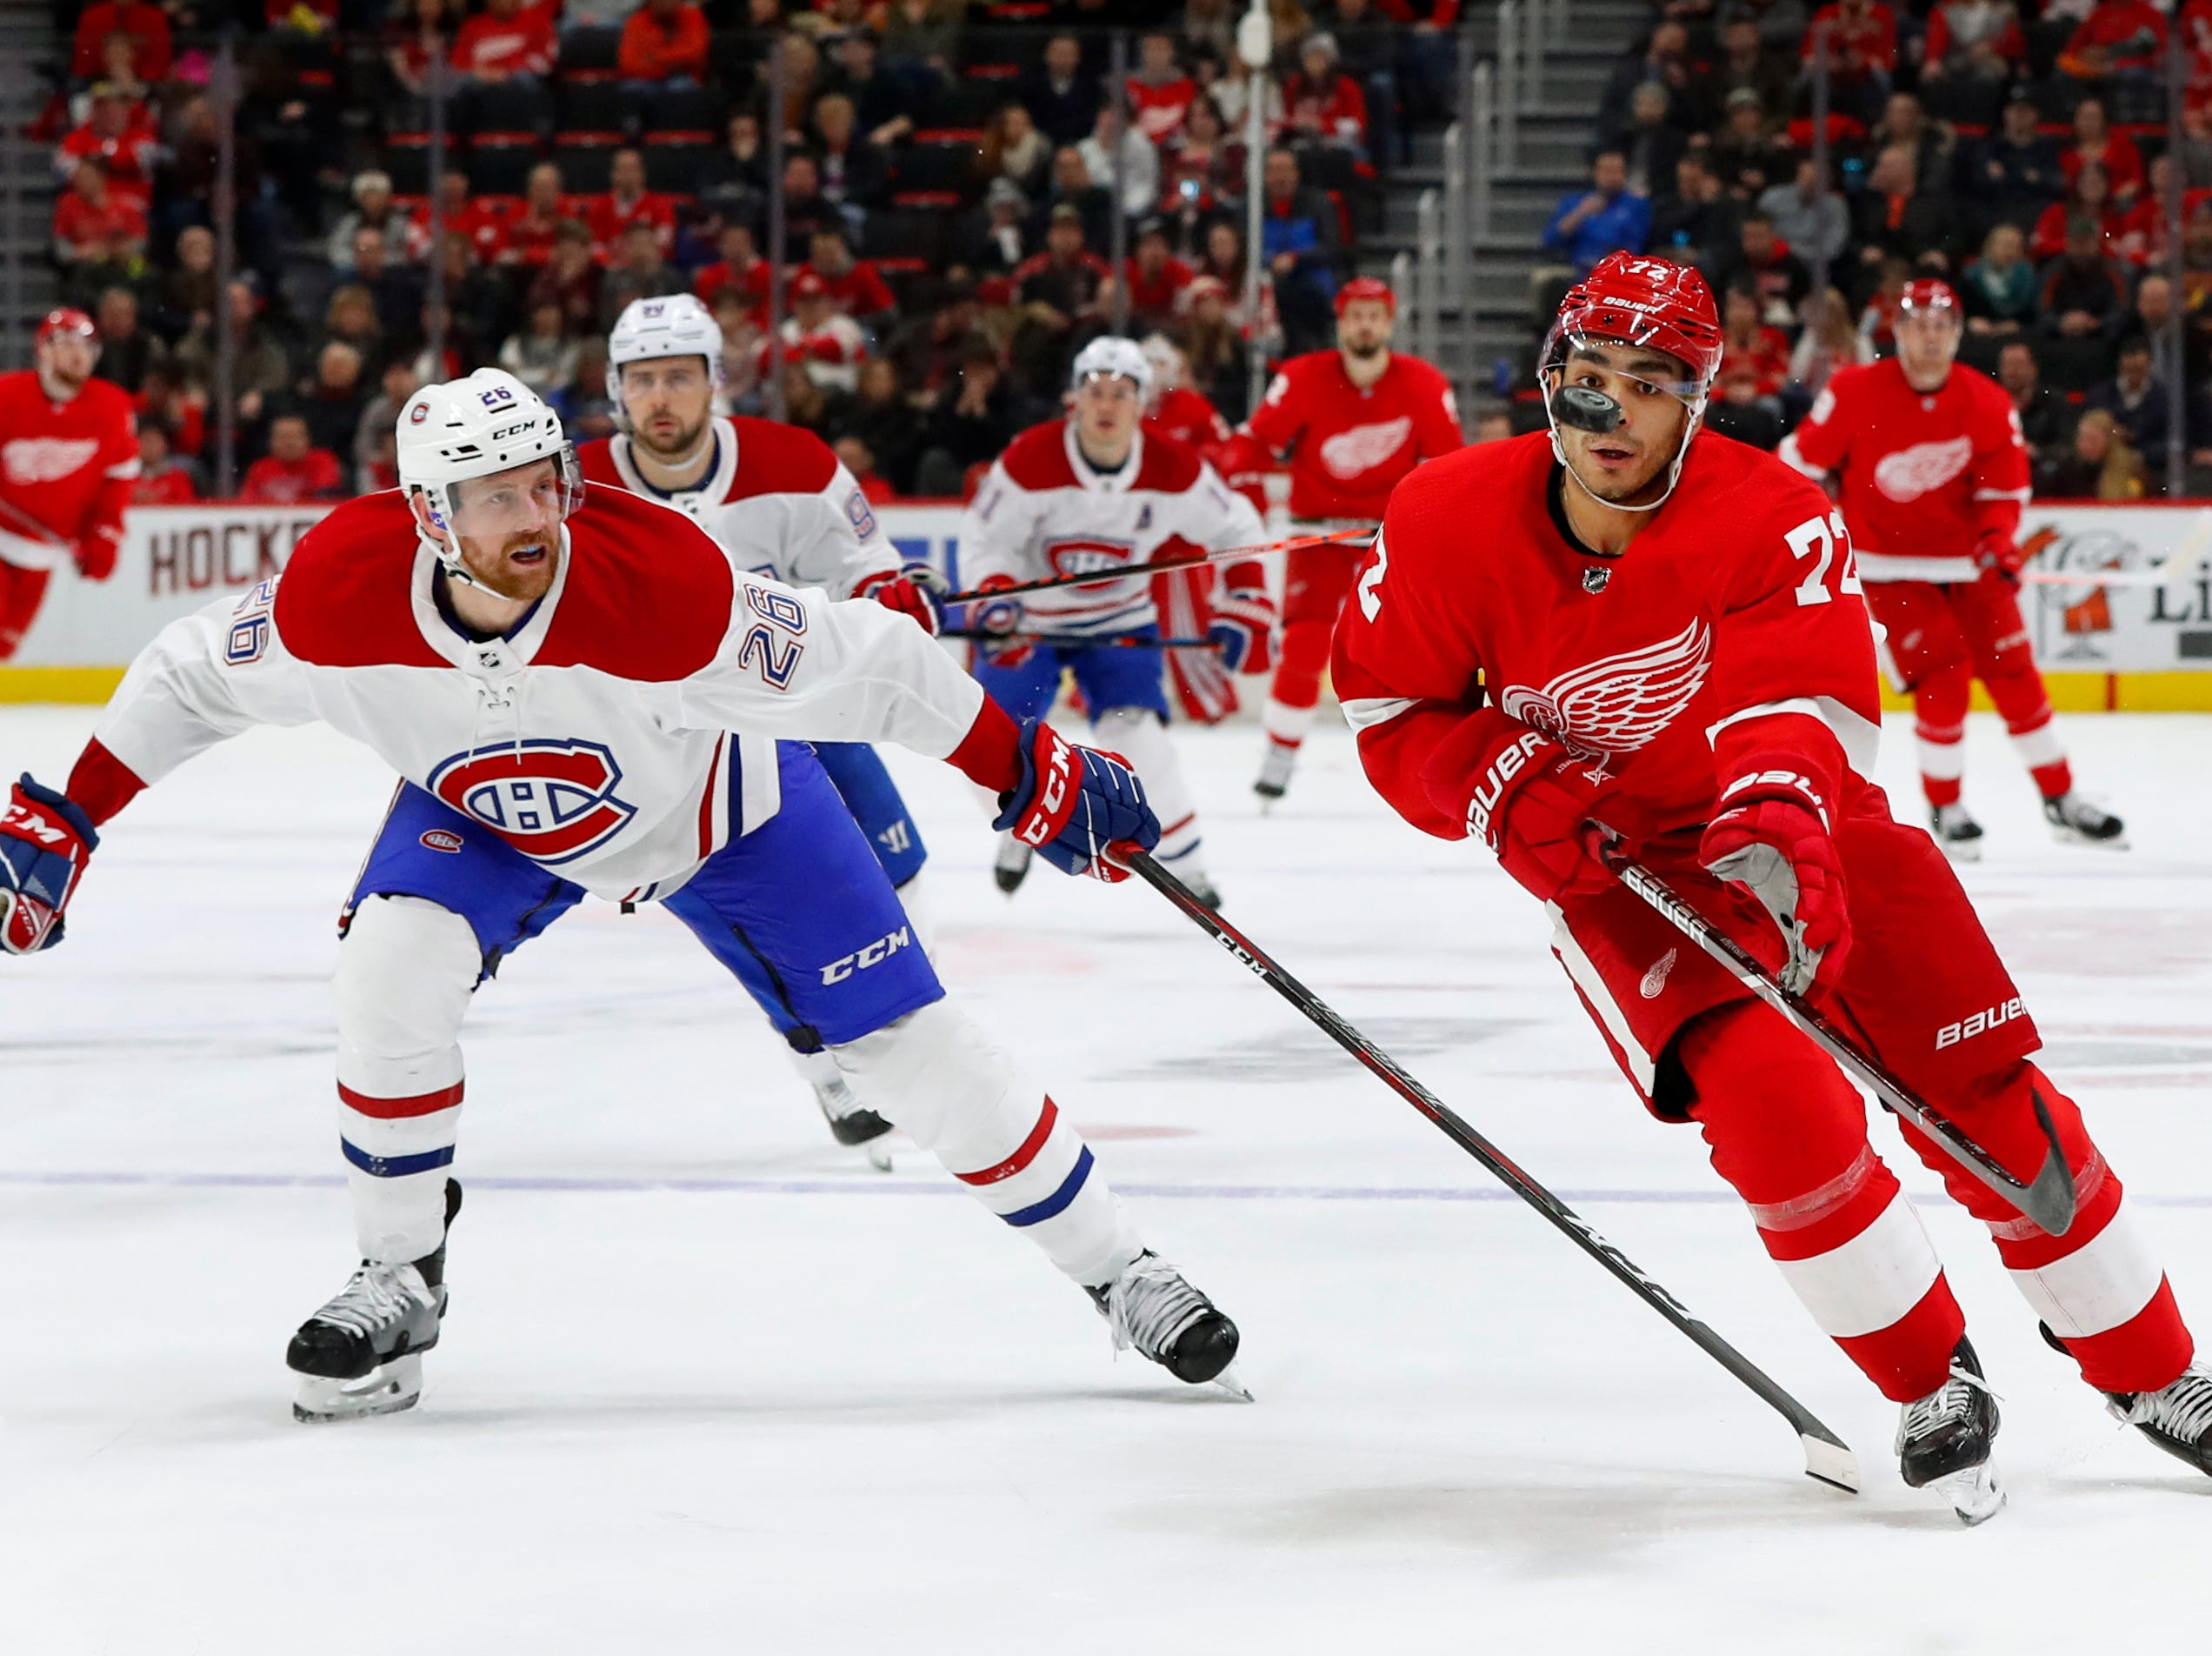 Detroit Red Wings center Andreas Athanasiou (72) keeps his eyes on the puck as Montreal Canadiens defenseman Mike Reilly (28) defends in the second period.